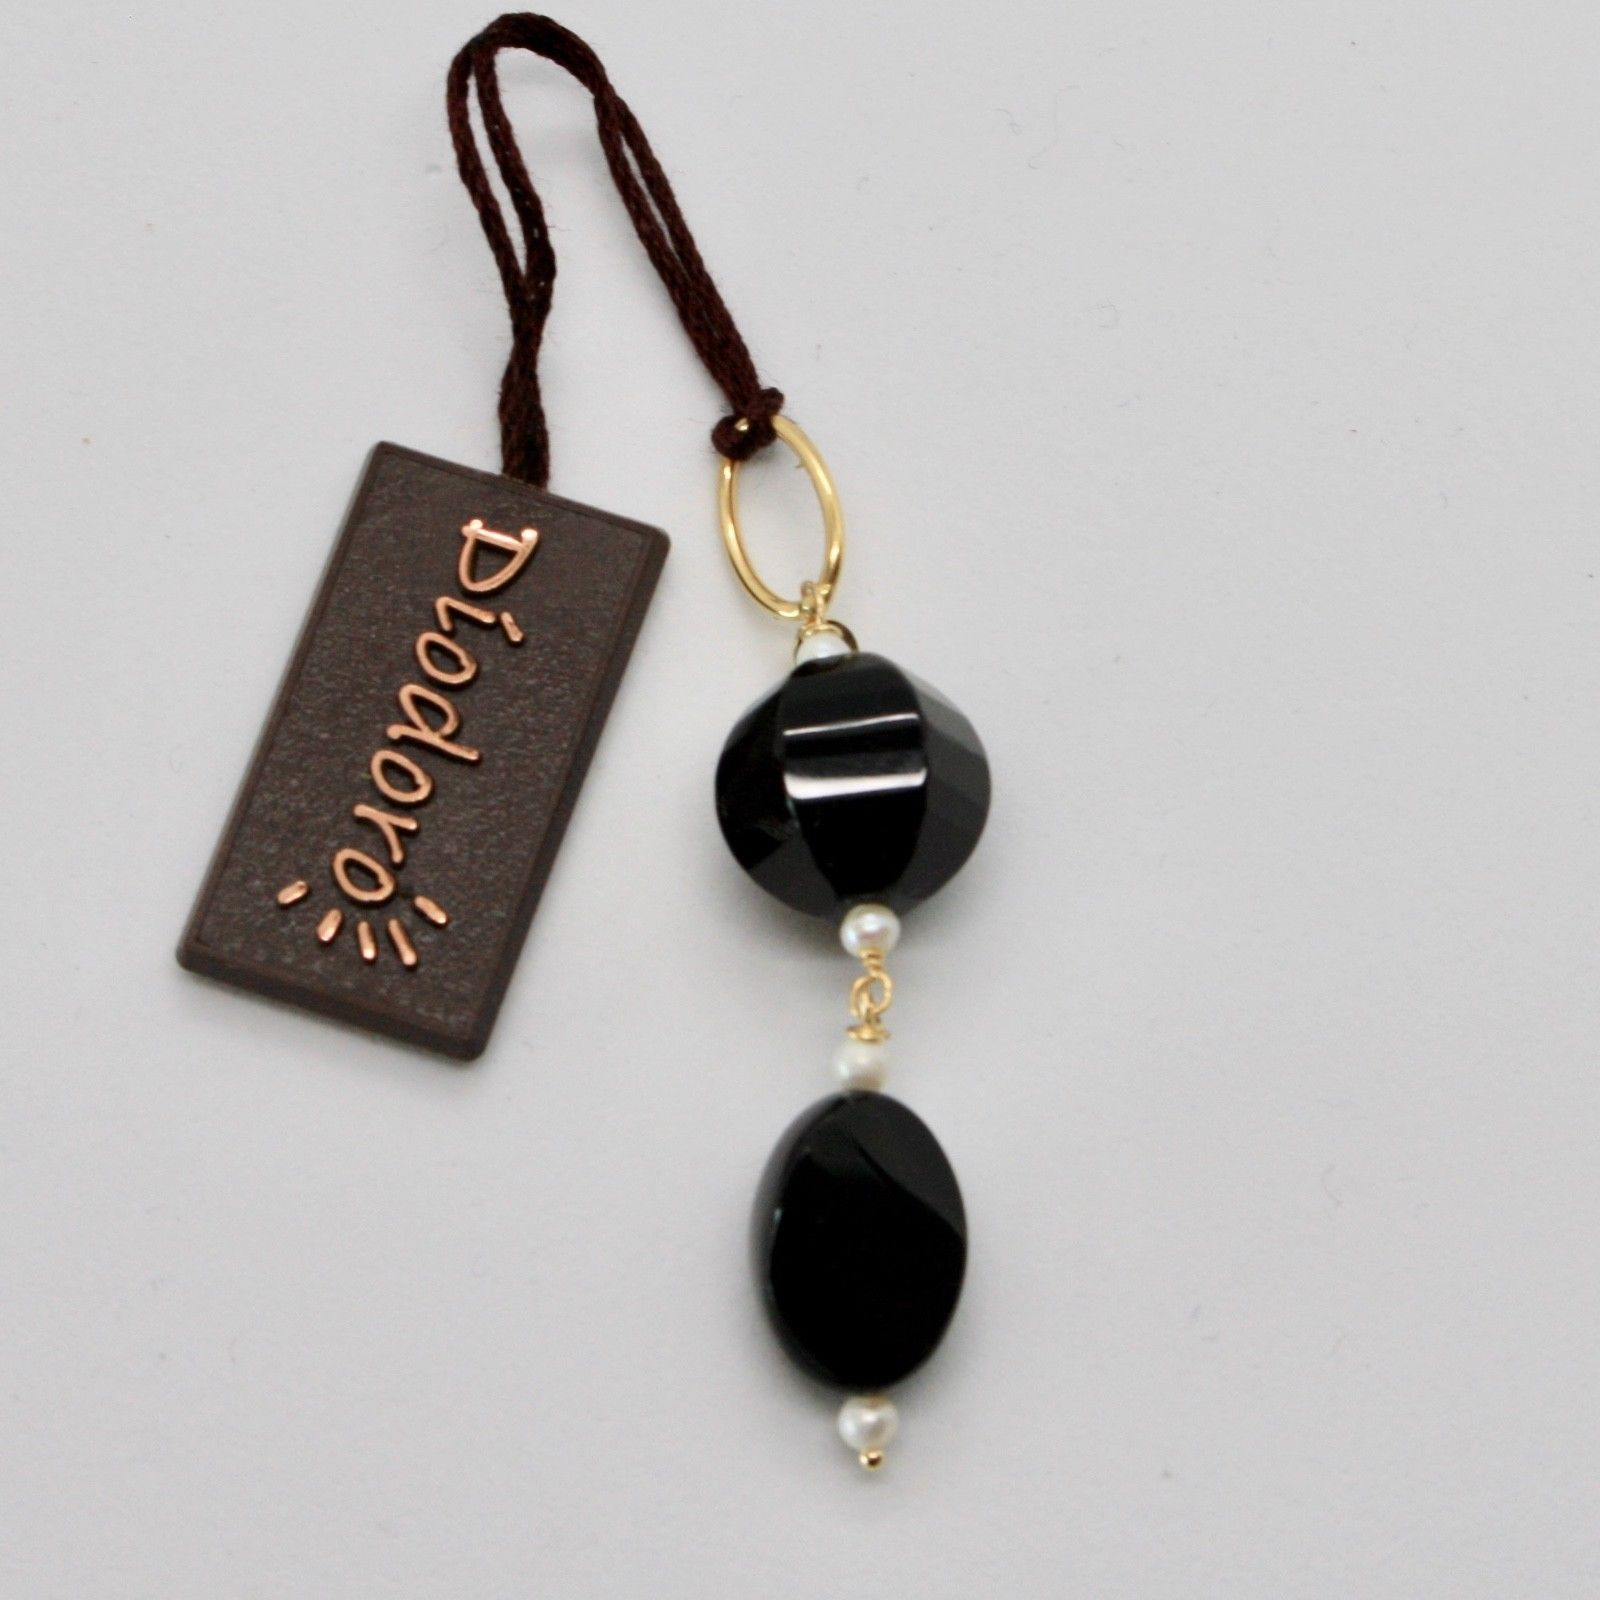 SOLID 18K YELLOW GOLD PENDANT WITH WHITE FW PEARL AND BLACK ONYX,  MADE IN ITALY